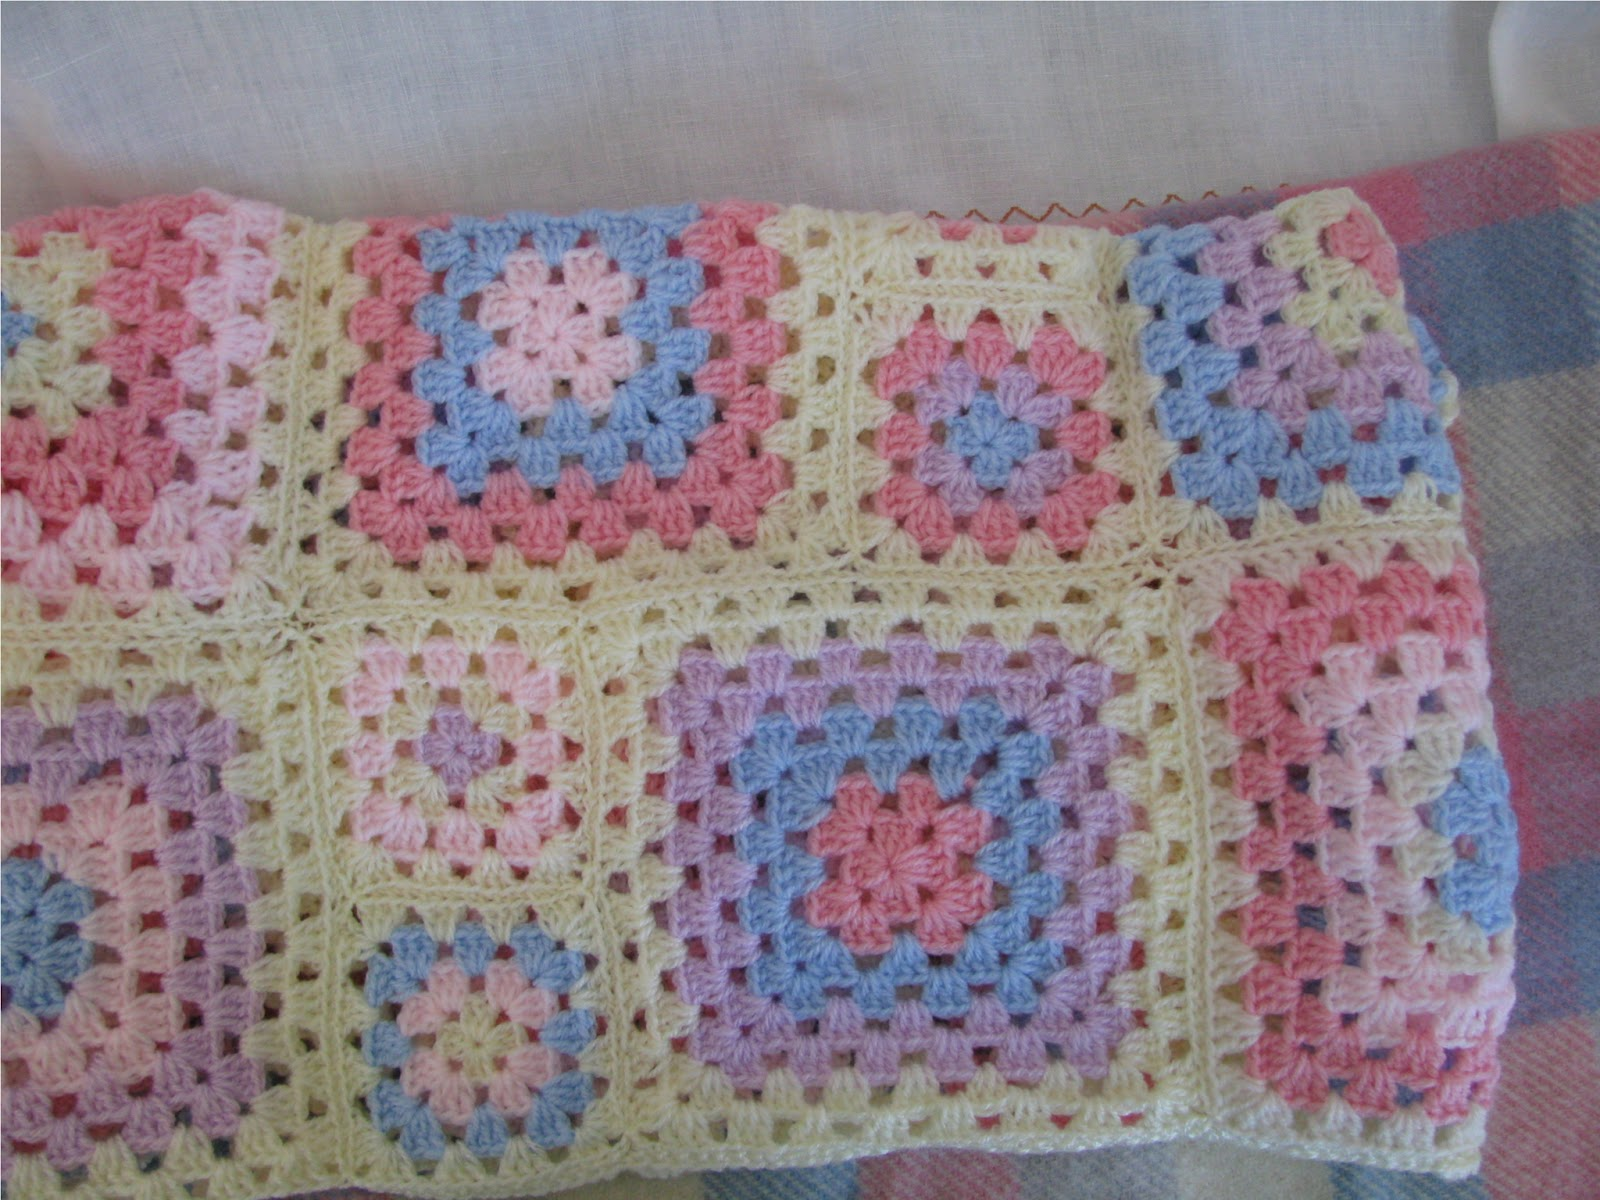 Crocheting Easy Baby Blanket : Shortbread & Ginger: Crochet Baby Blanket